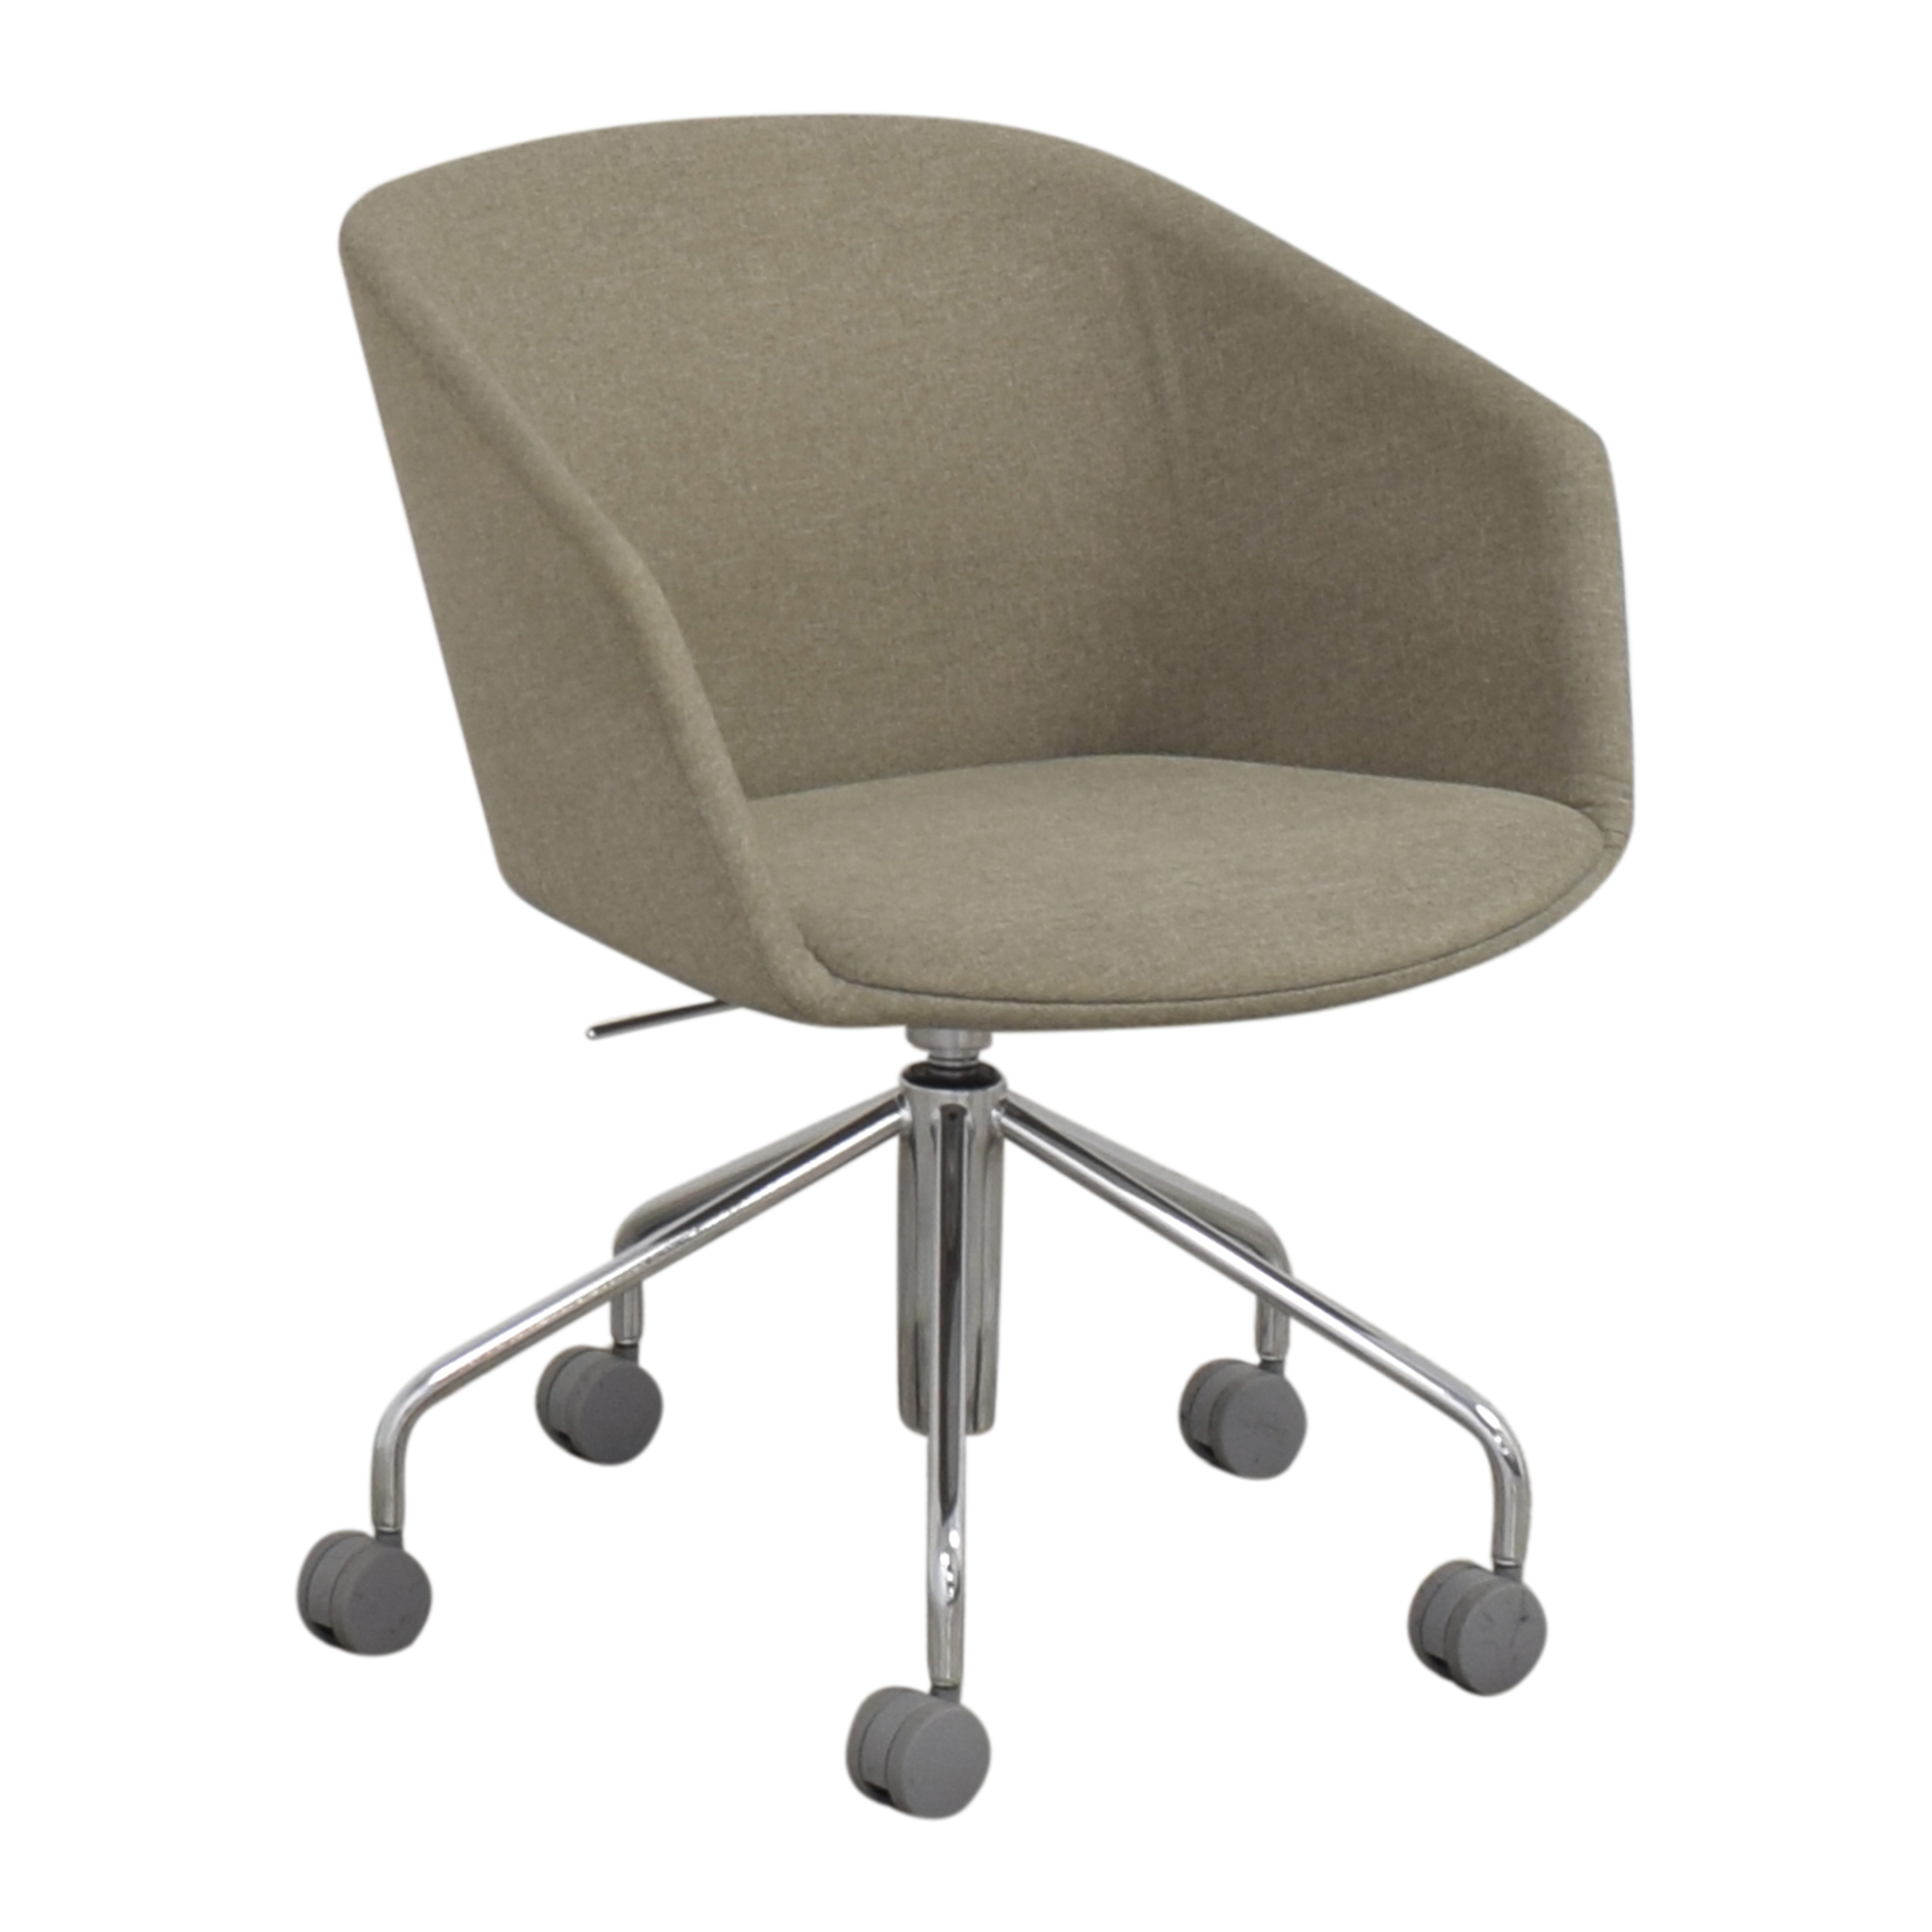 buy Poppin Pitch Meeting Chair Poppin